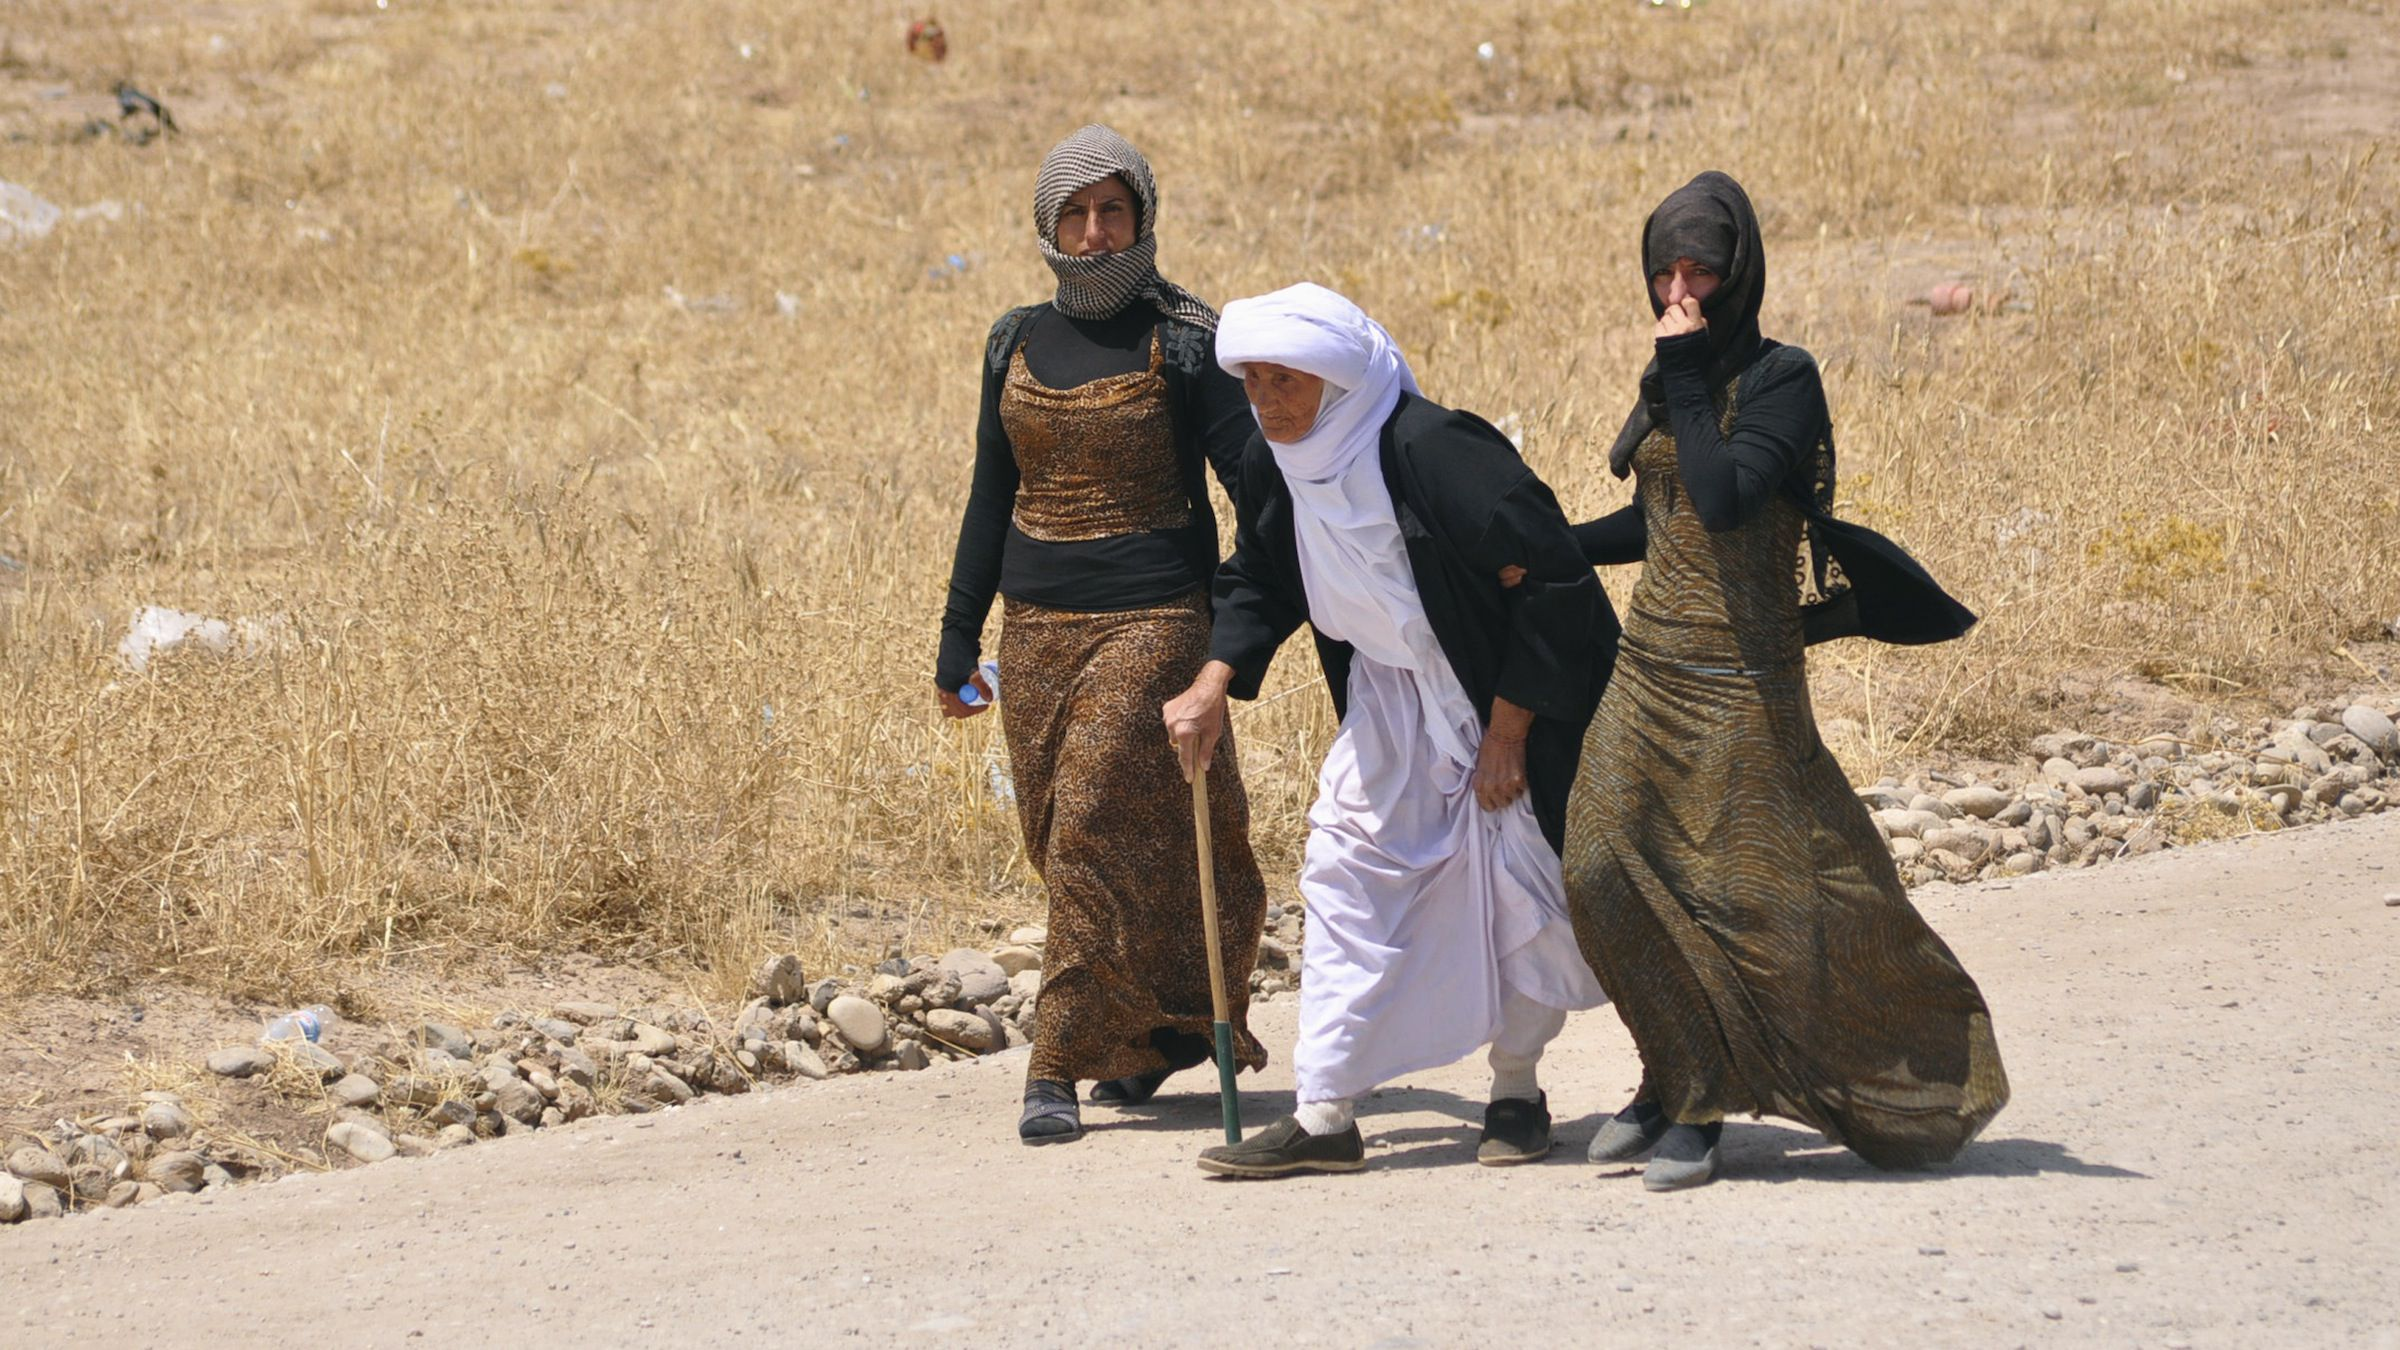 Displaced families from the minority Yazidi sect, fleeing the violence, walk on the outskirts of Sinjar, west of Mosul, August 5, 2014.  Tens of thousands fled the weekend assault on Sinjar and are now surrounded, according to witnesses and the United Nations, after the Sunni militants inflicted a humiliating defeat on Kurdish forces who had held towns in the area for years. Picture taken August 5, 2014. REUTERS/Stringer (IRAQ - Tags: CIVIL UNREST POLITICS CONFLICT RELIGION TPX IMAGES OF THE DAY) - RTR41ERA